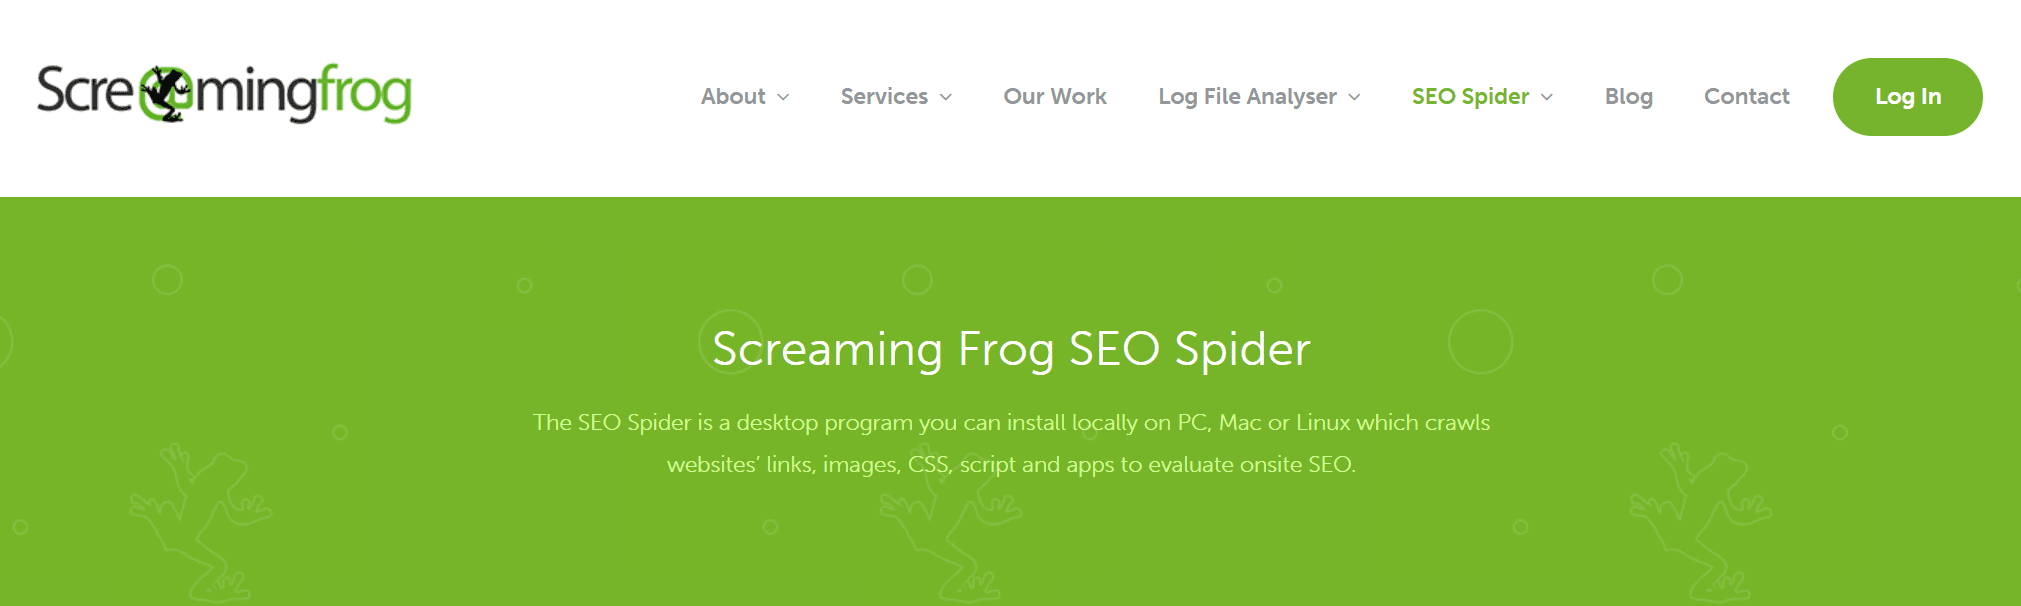 screaming frog er godt til test af affiliate websider